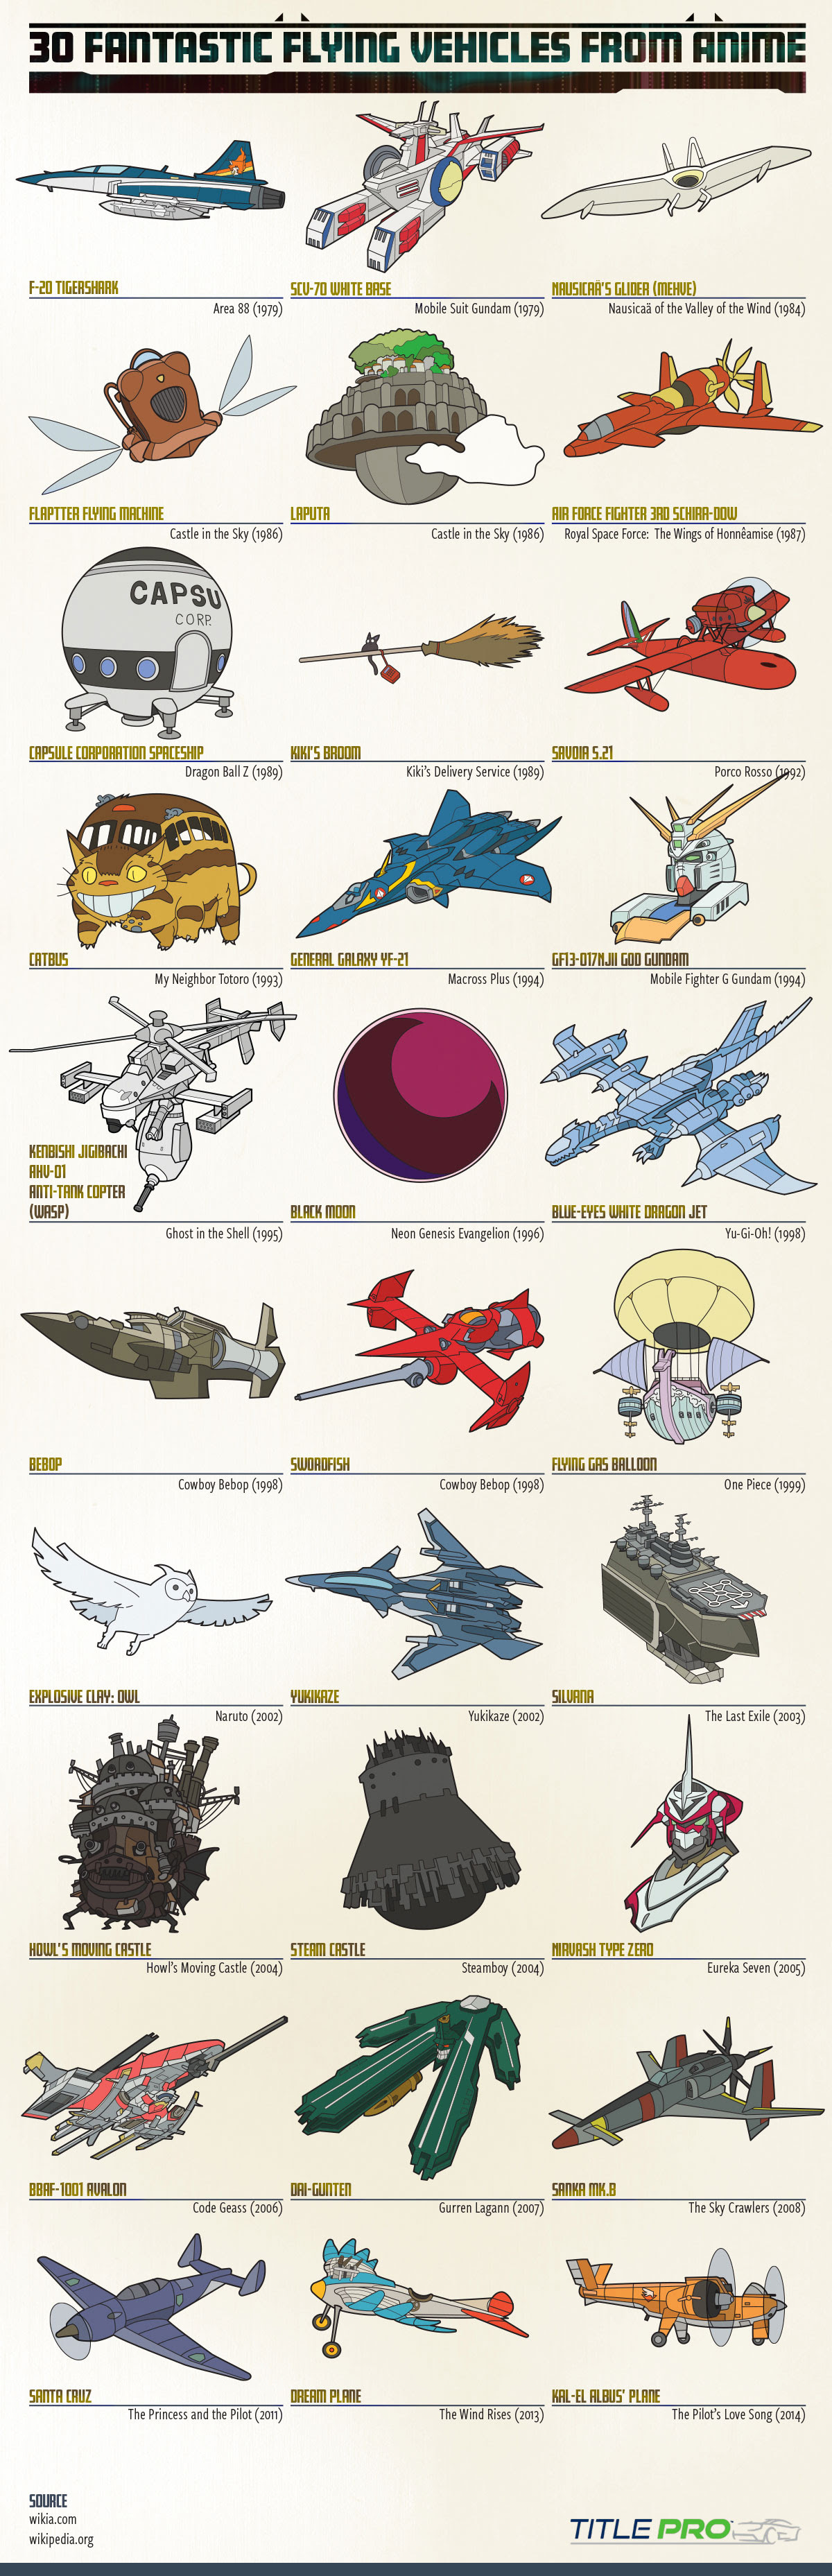 30 Fantastic Flying Vehicles From Anime